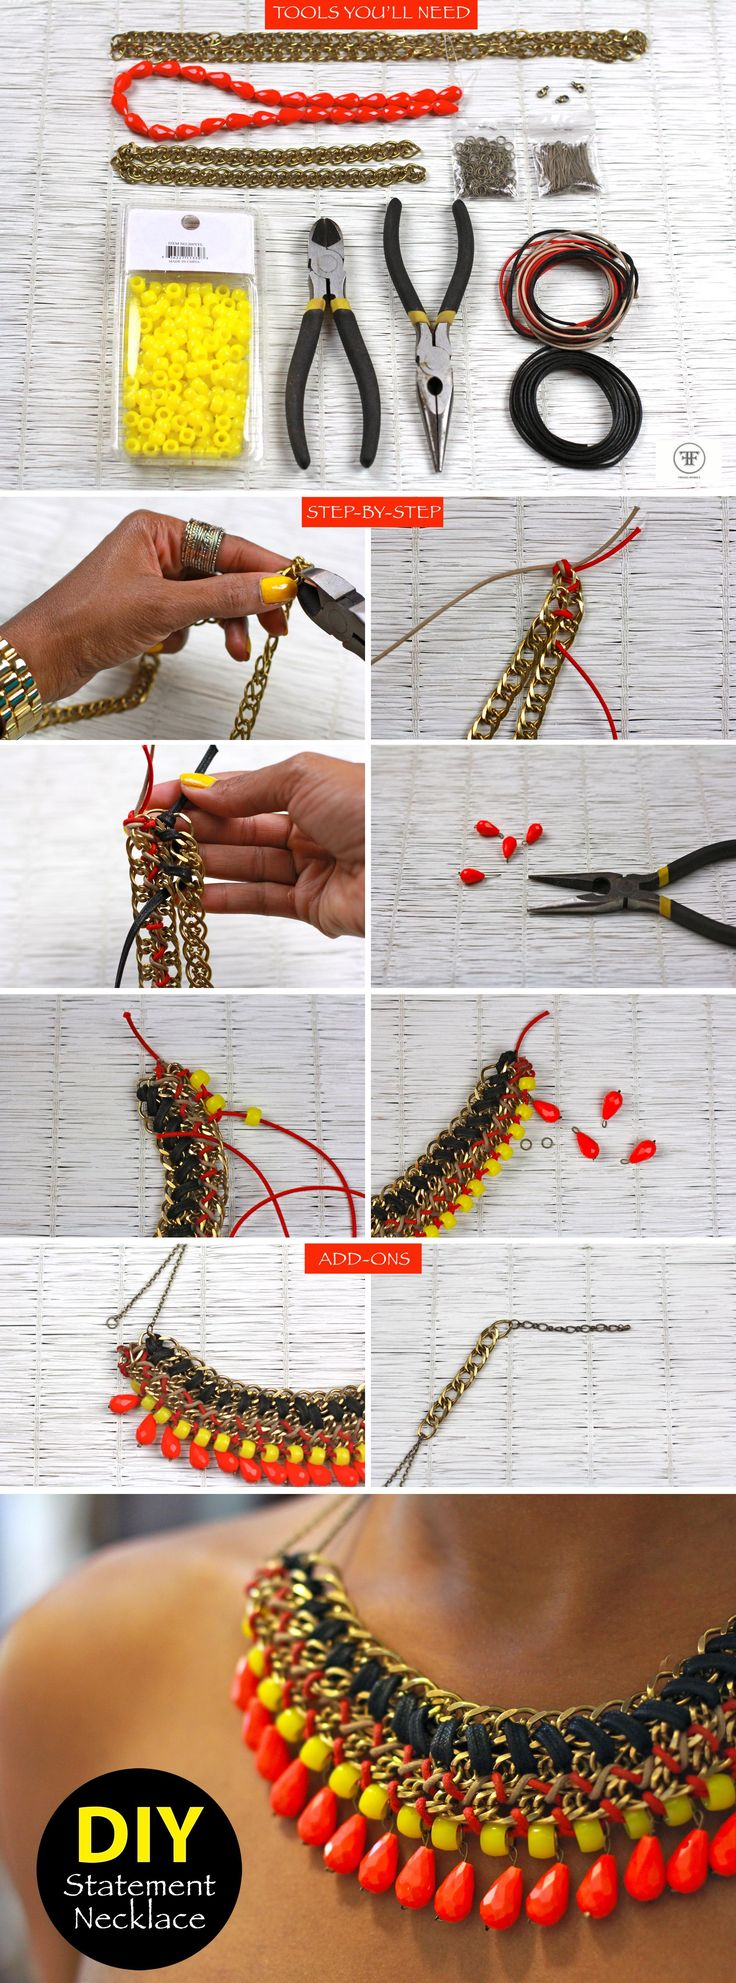 DIY Statement Necklace - imagine this with really pretty glass Beads instead of plastic!